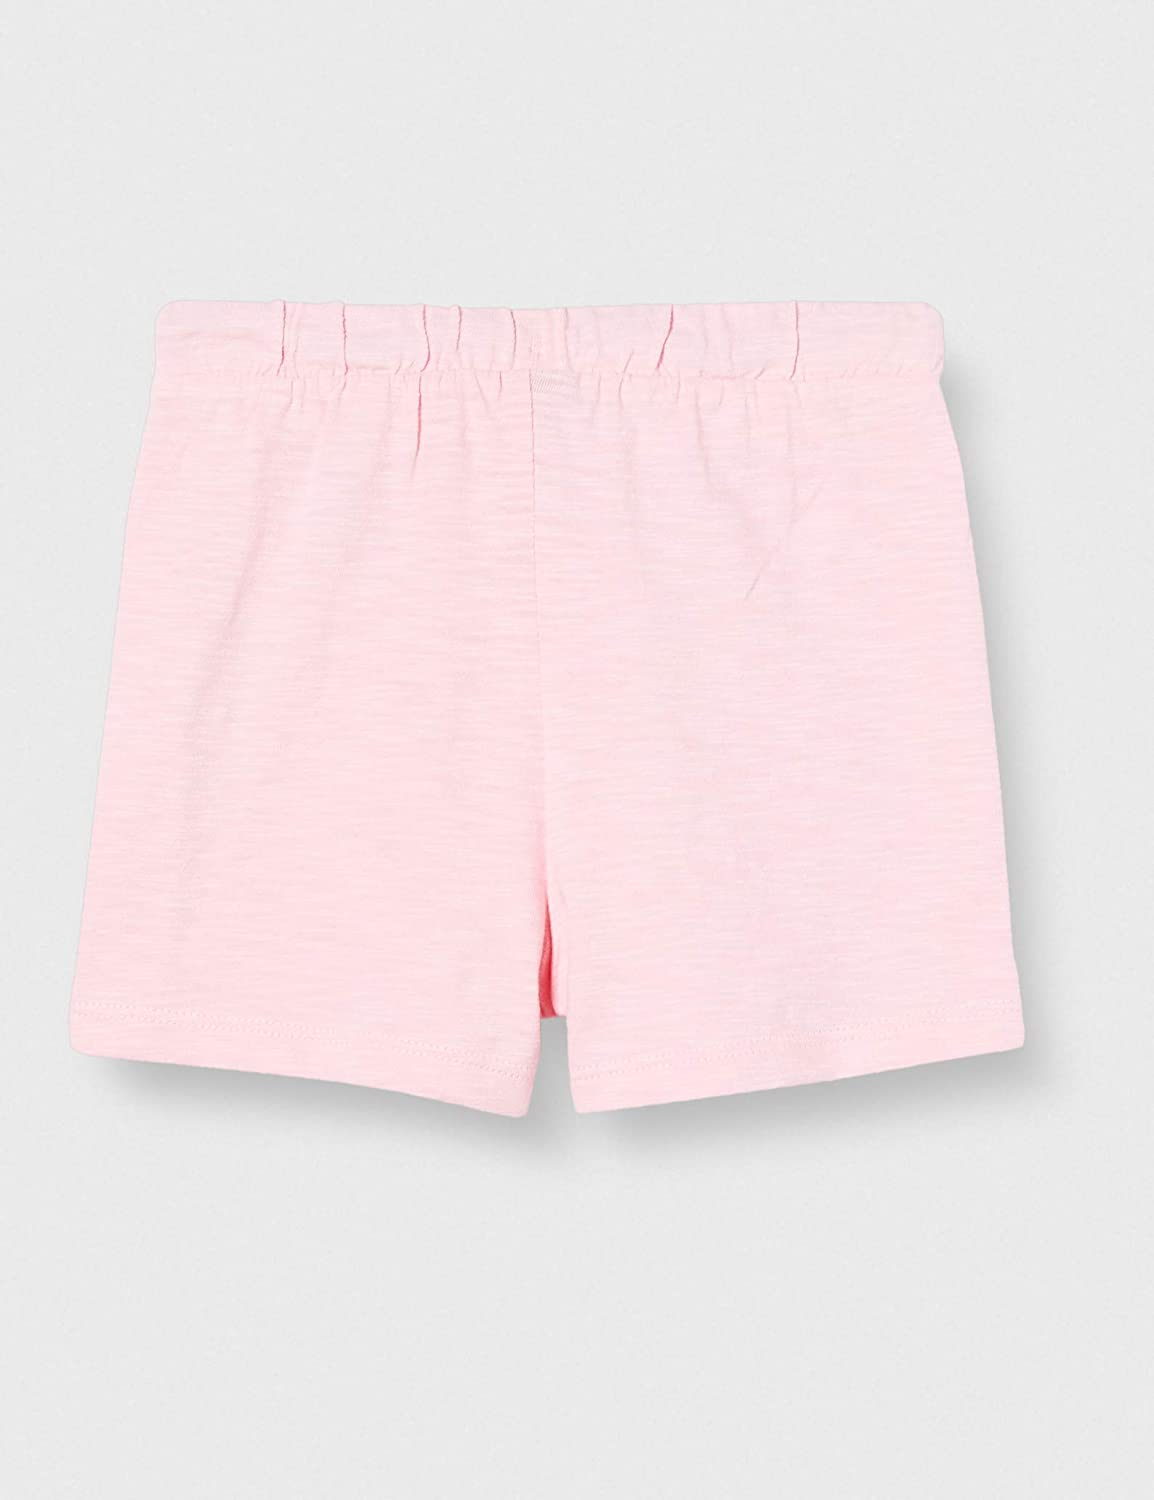 s.Oliver Junior Short Baby Girls Pantaloncini Casual Bimba 0-24